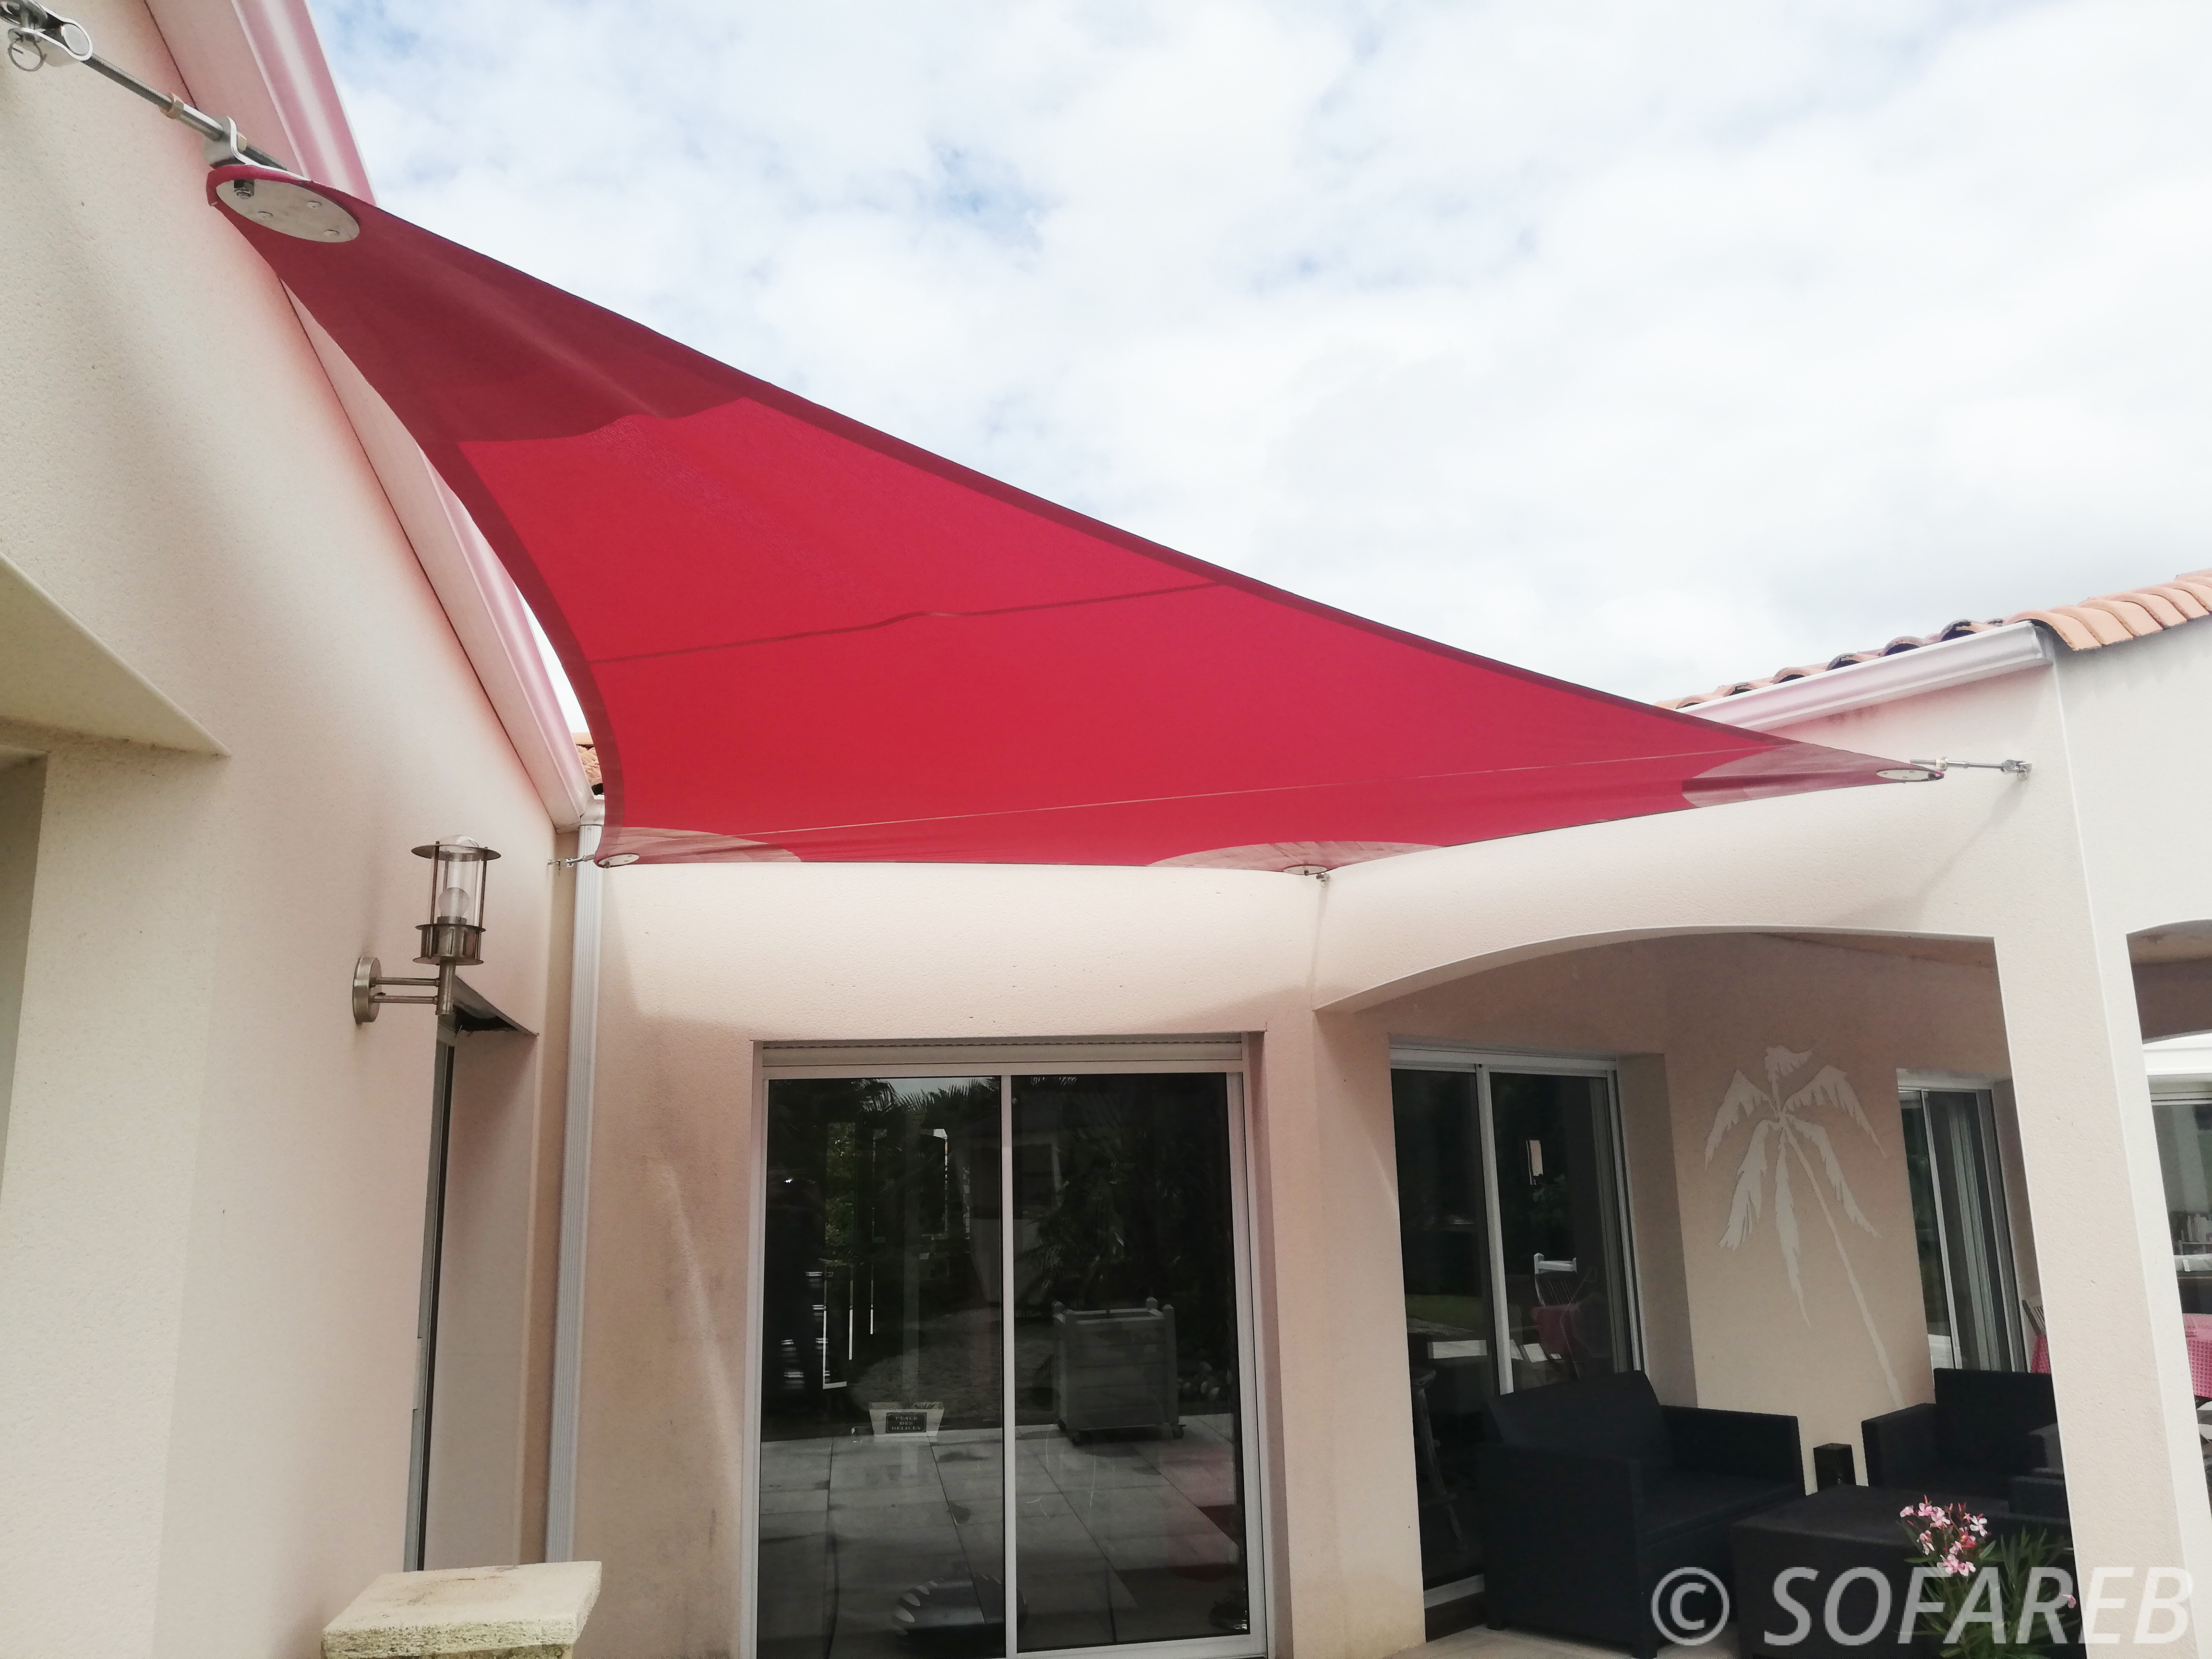 voile-ombrage-triangulaire-rouge-vendee-85